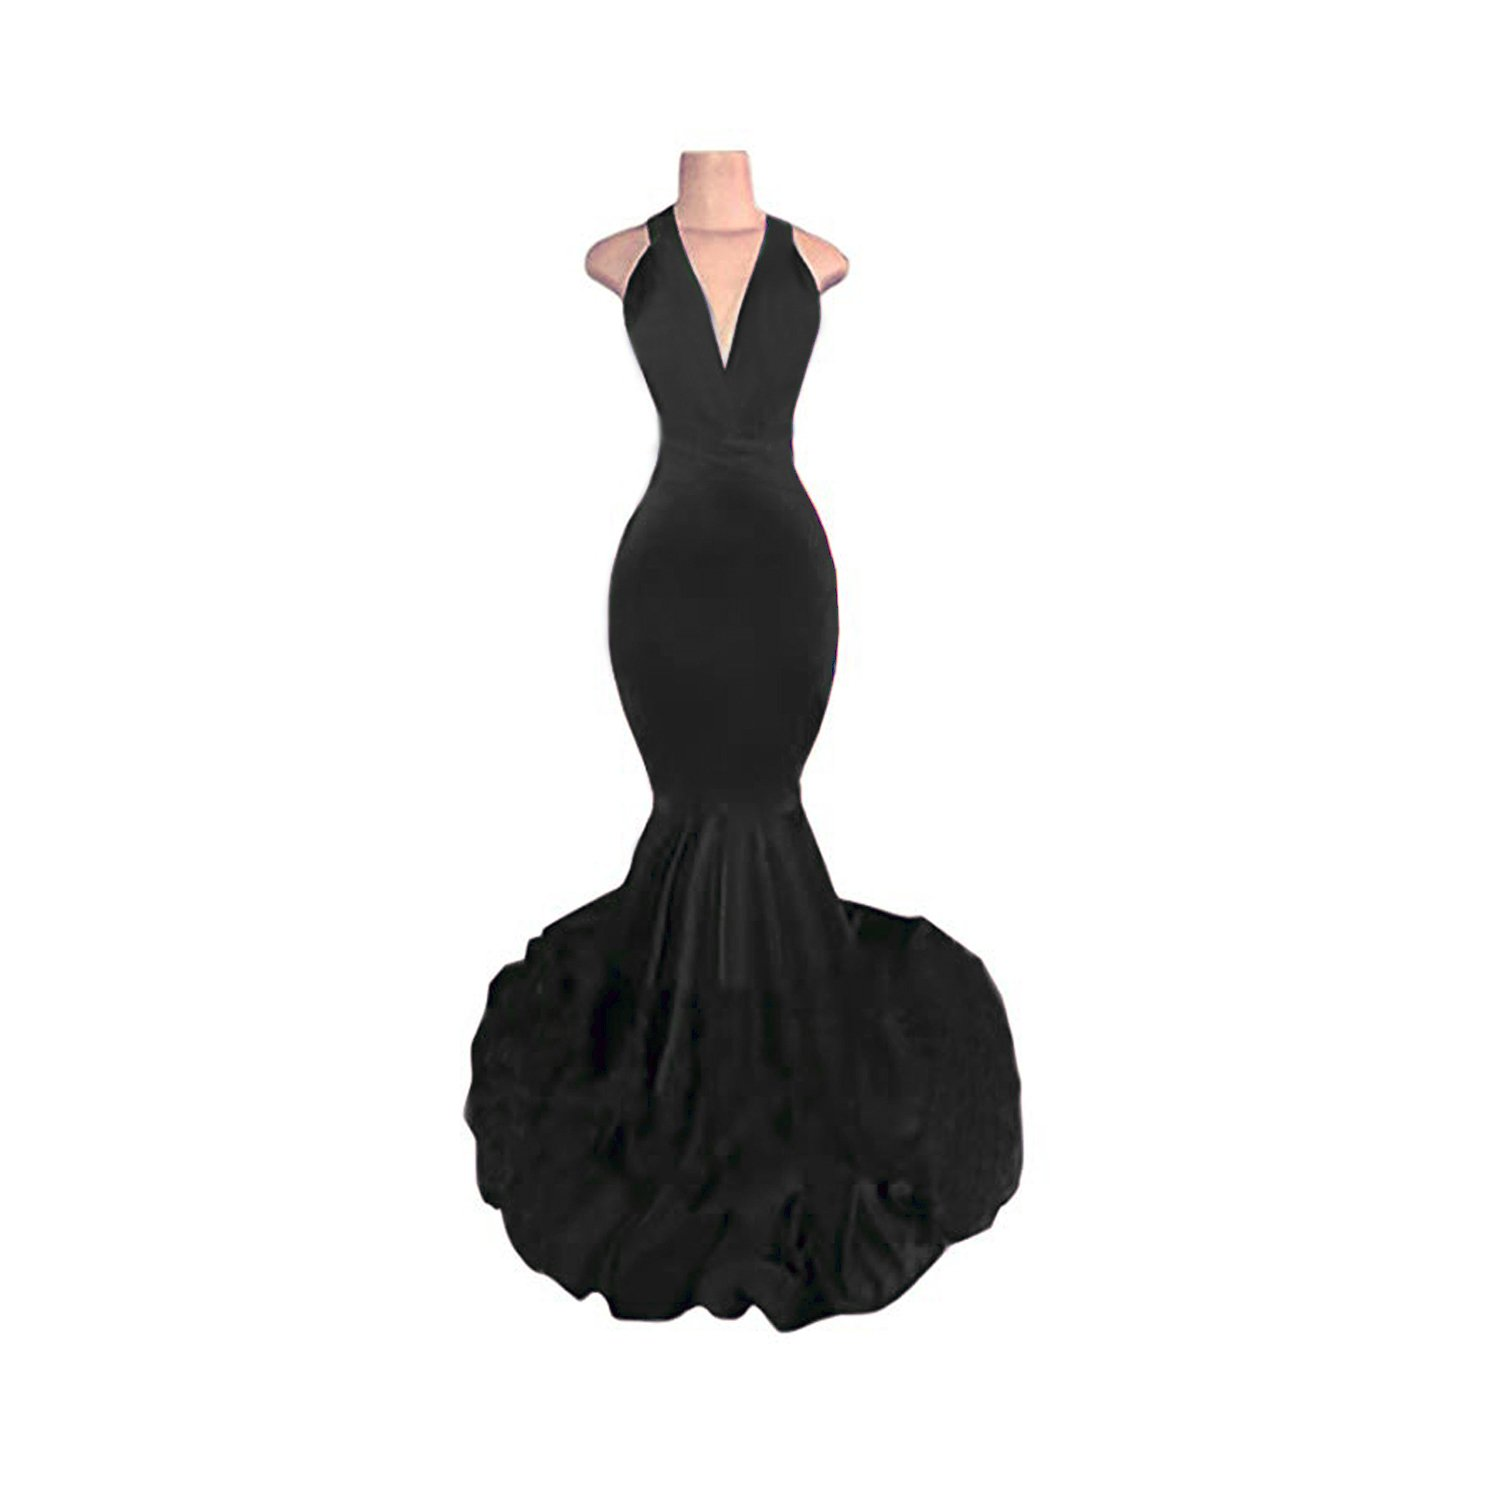 3bab564daf4 KapokBanyan Women s Sexy Backless Mermaid Prom Dresses 2018 Long Evening  Gowns Summer Dress at Amazon Women s Clothing store